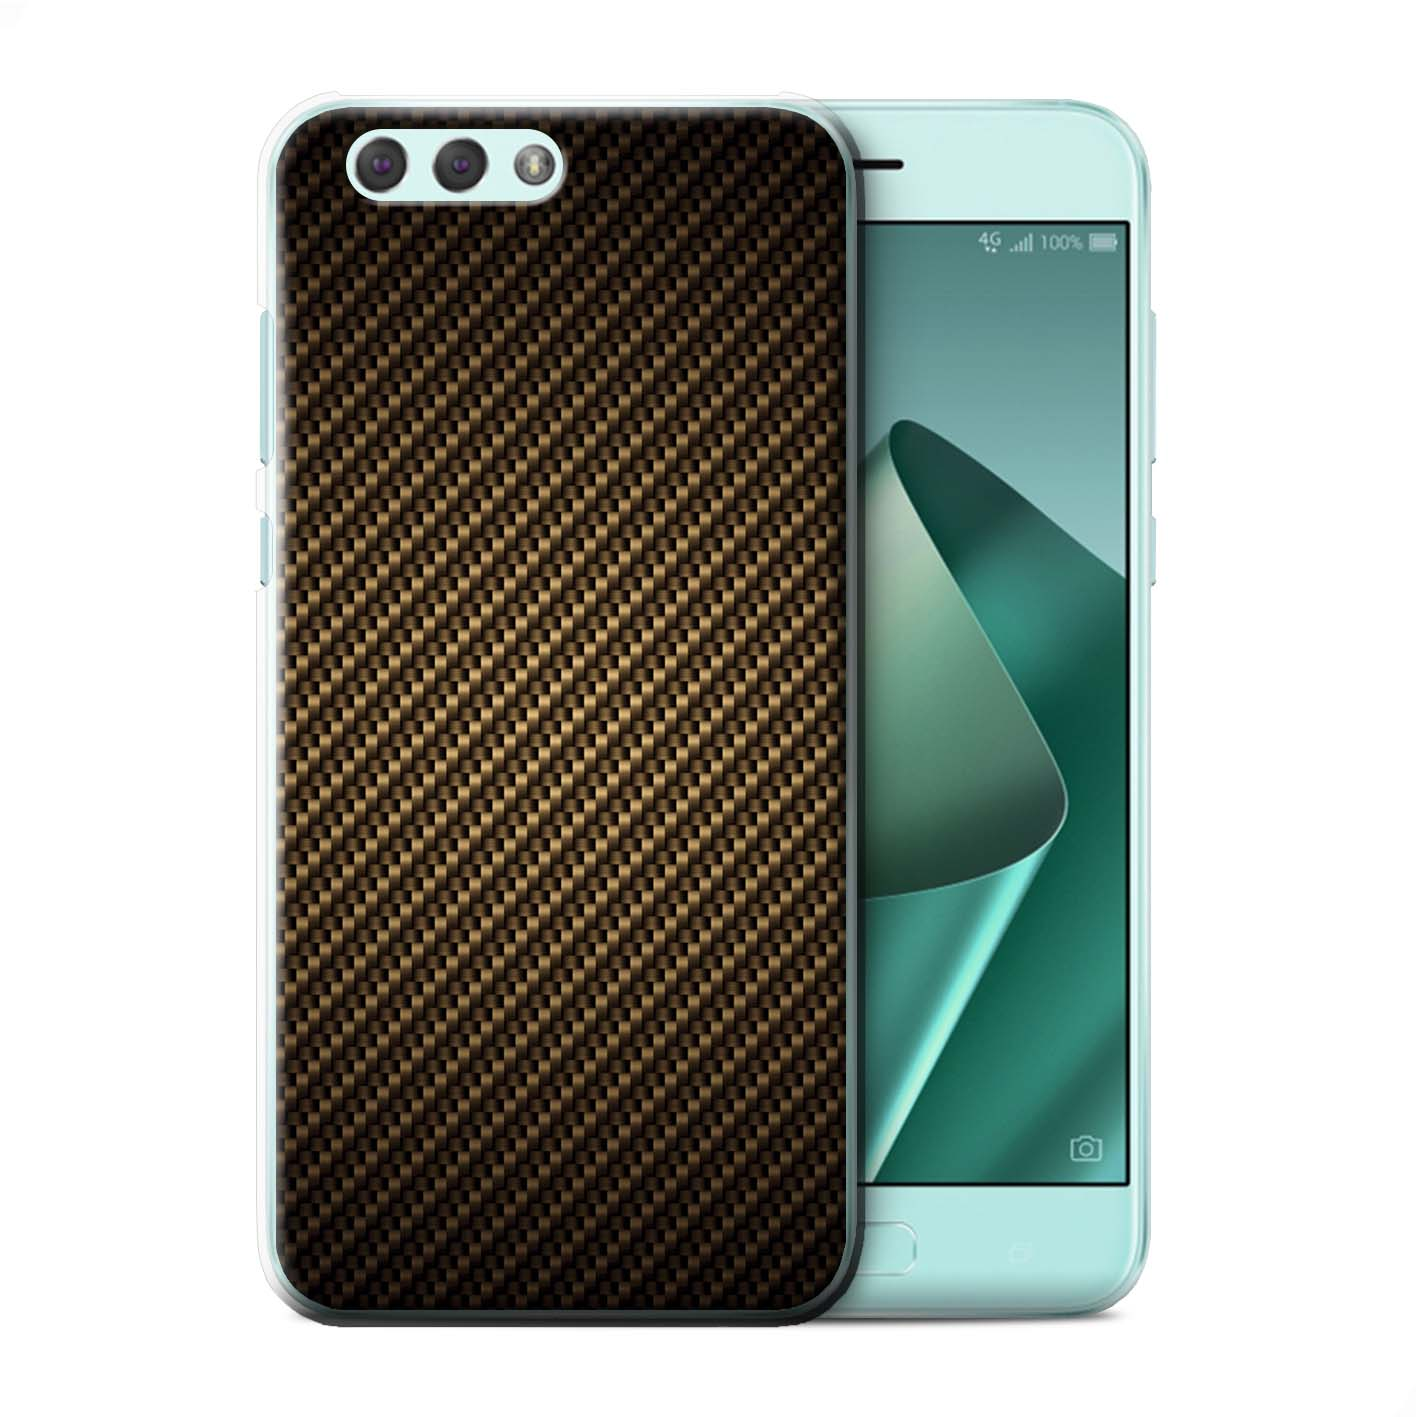 Back-Case-Cover-Skin-for-Asus-Zenfone-4-ZE554KL-Carbon-Fibre-Effect-Pattern